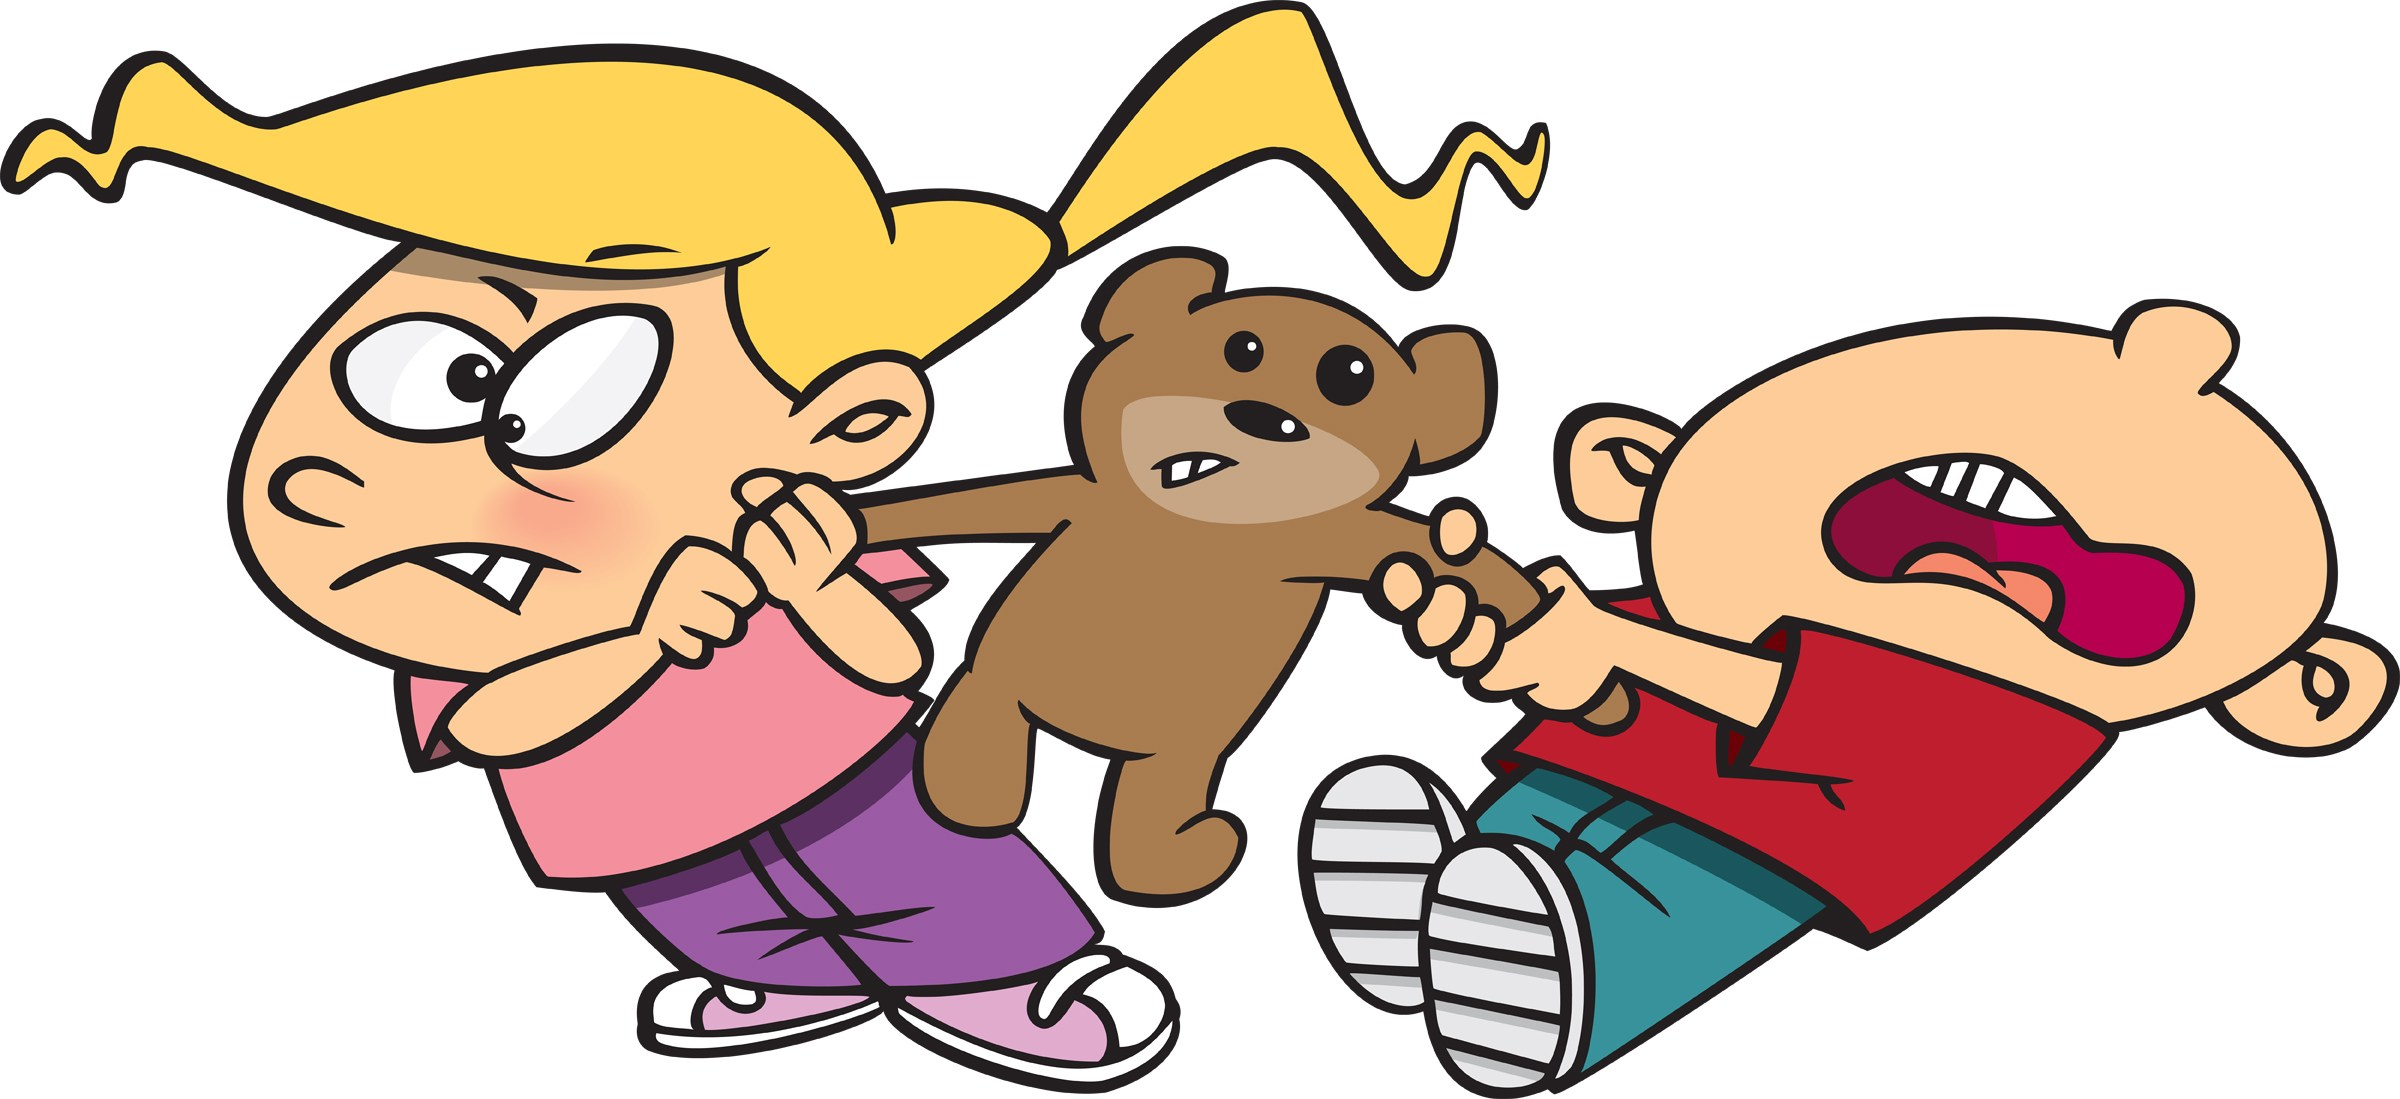 Children sharing clipart 6 » Clipart Portal.